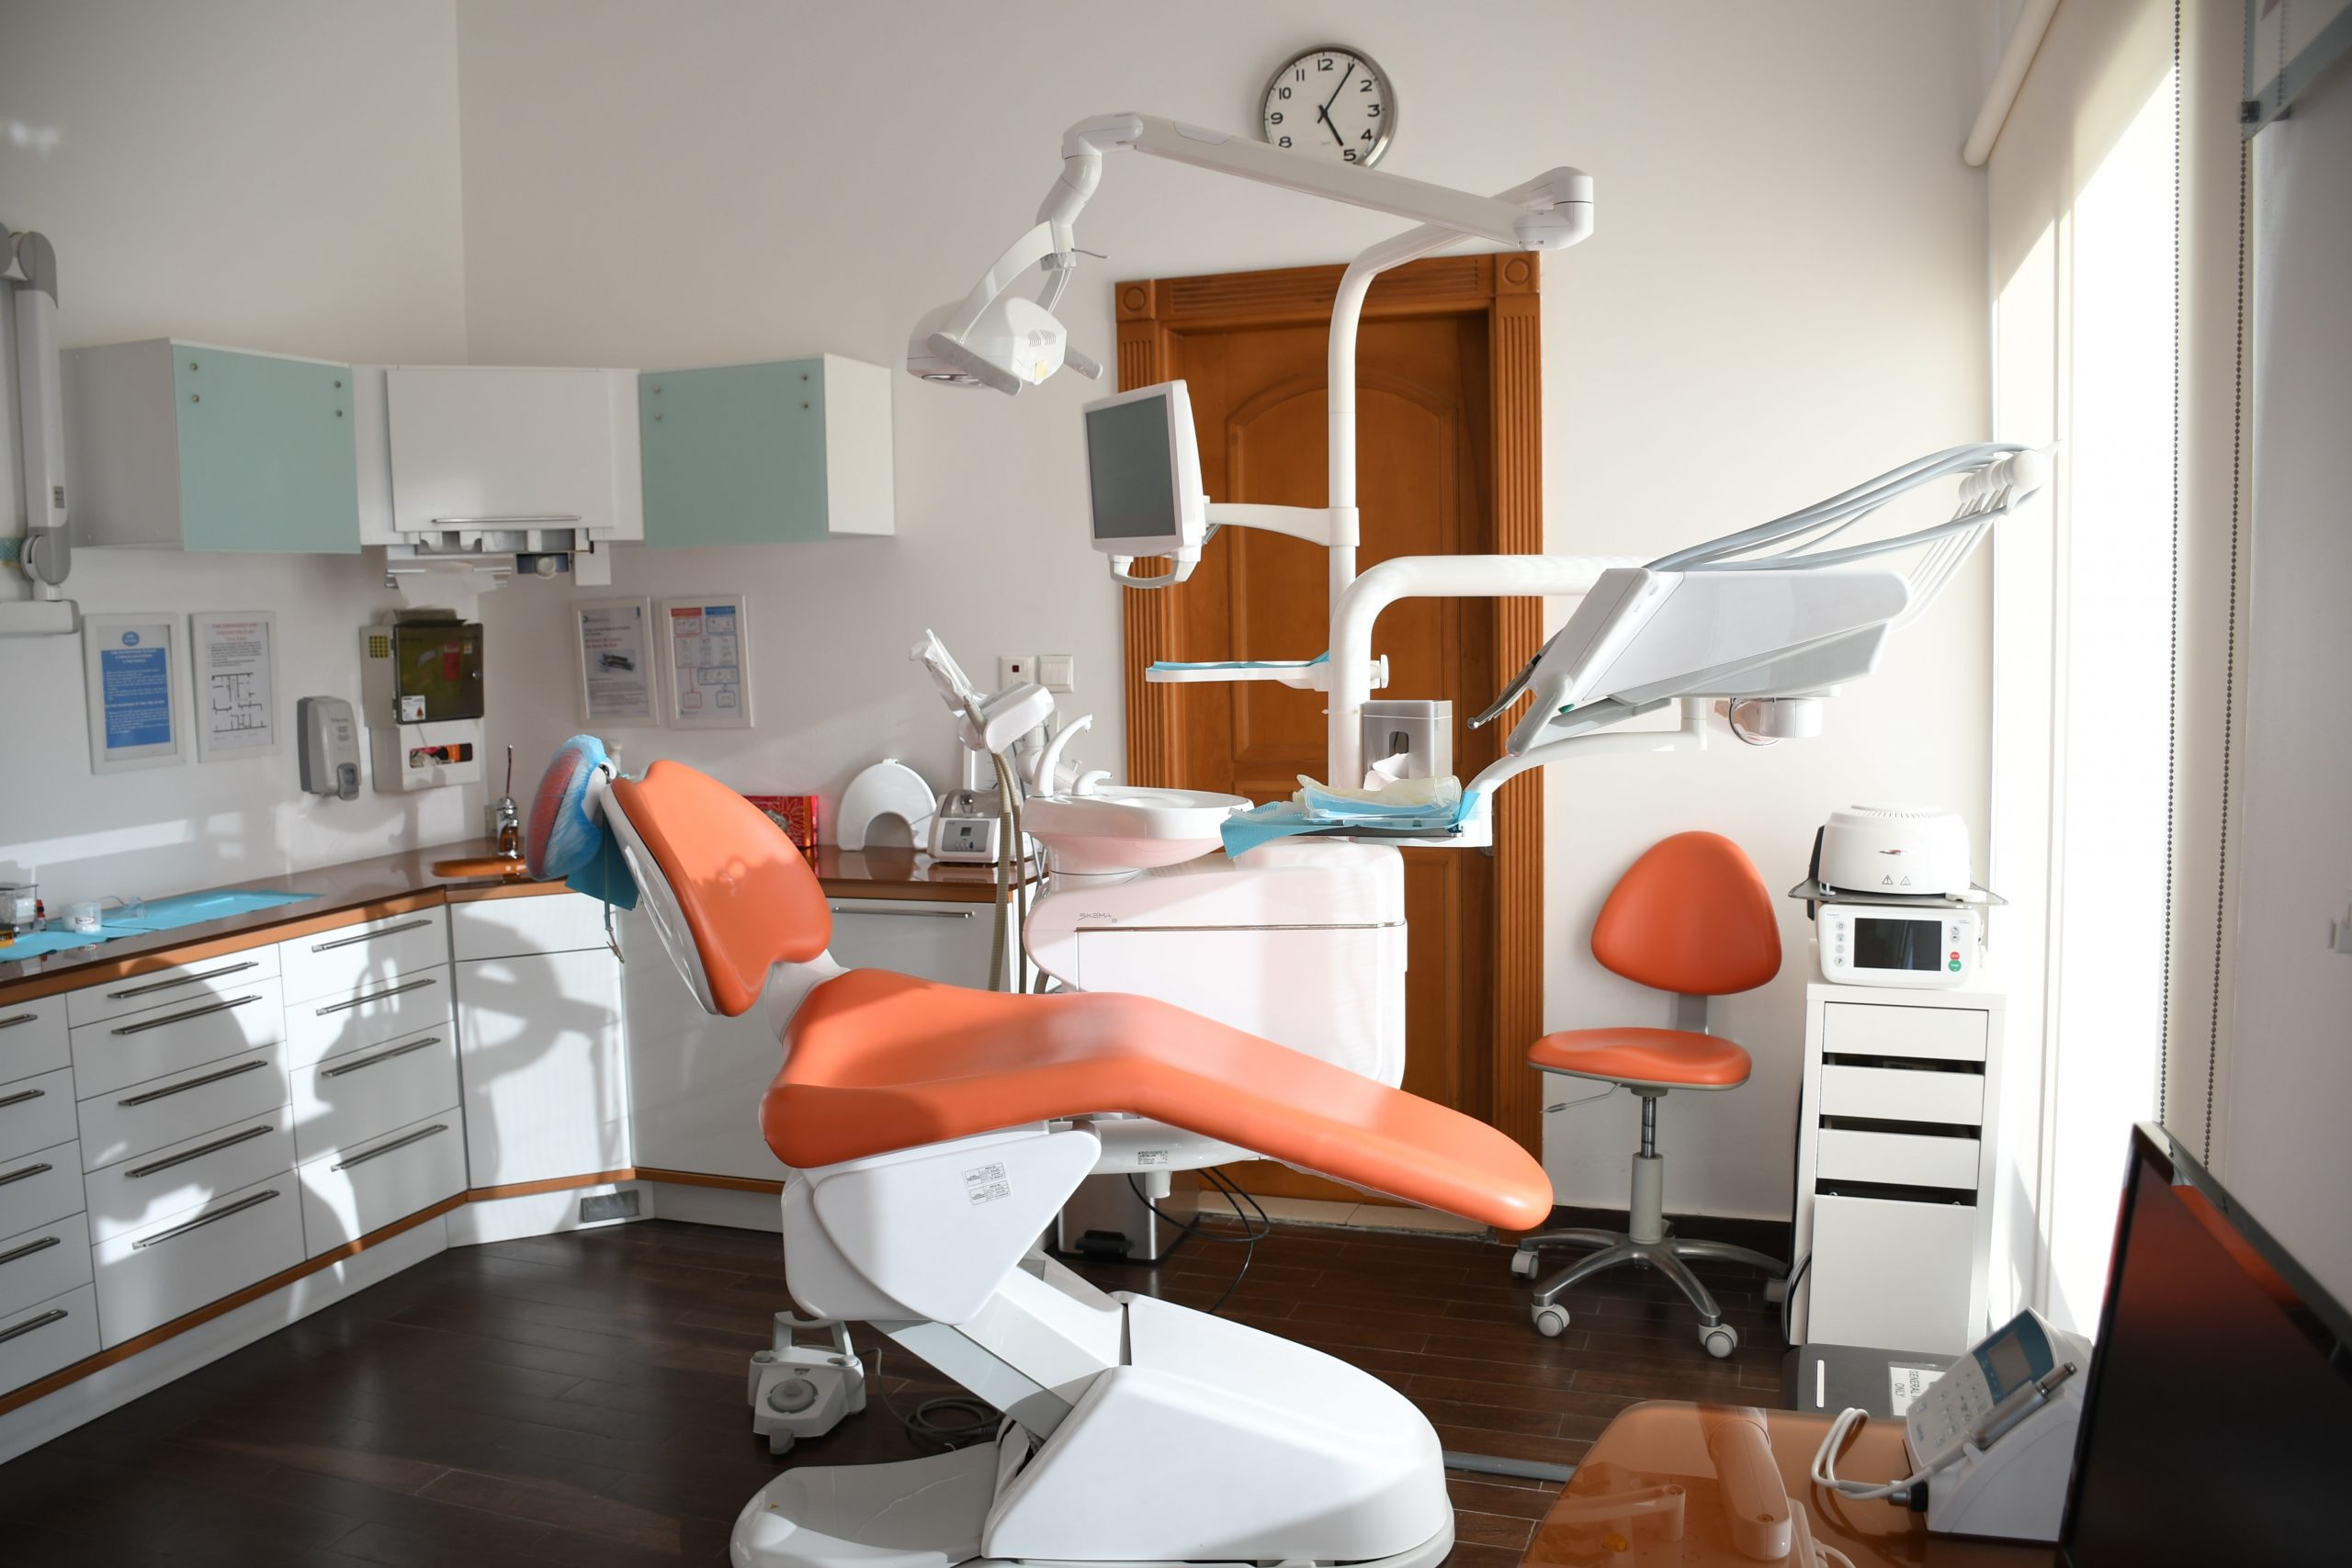 dental chair in an article about oral health